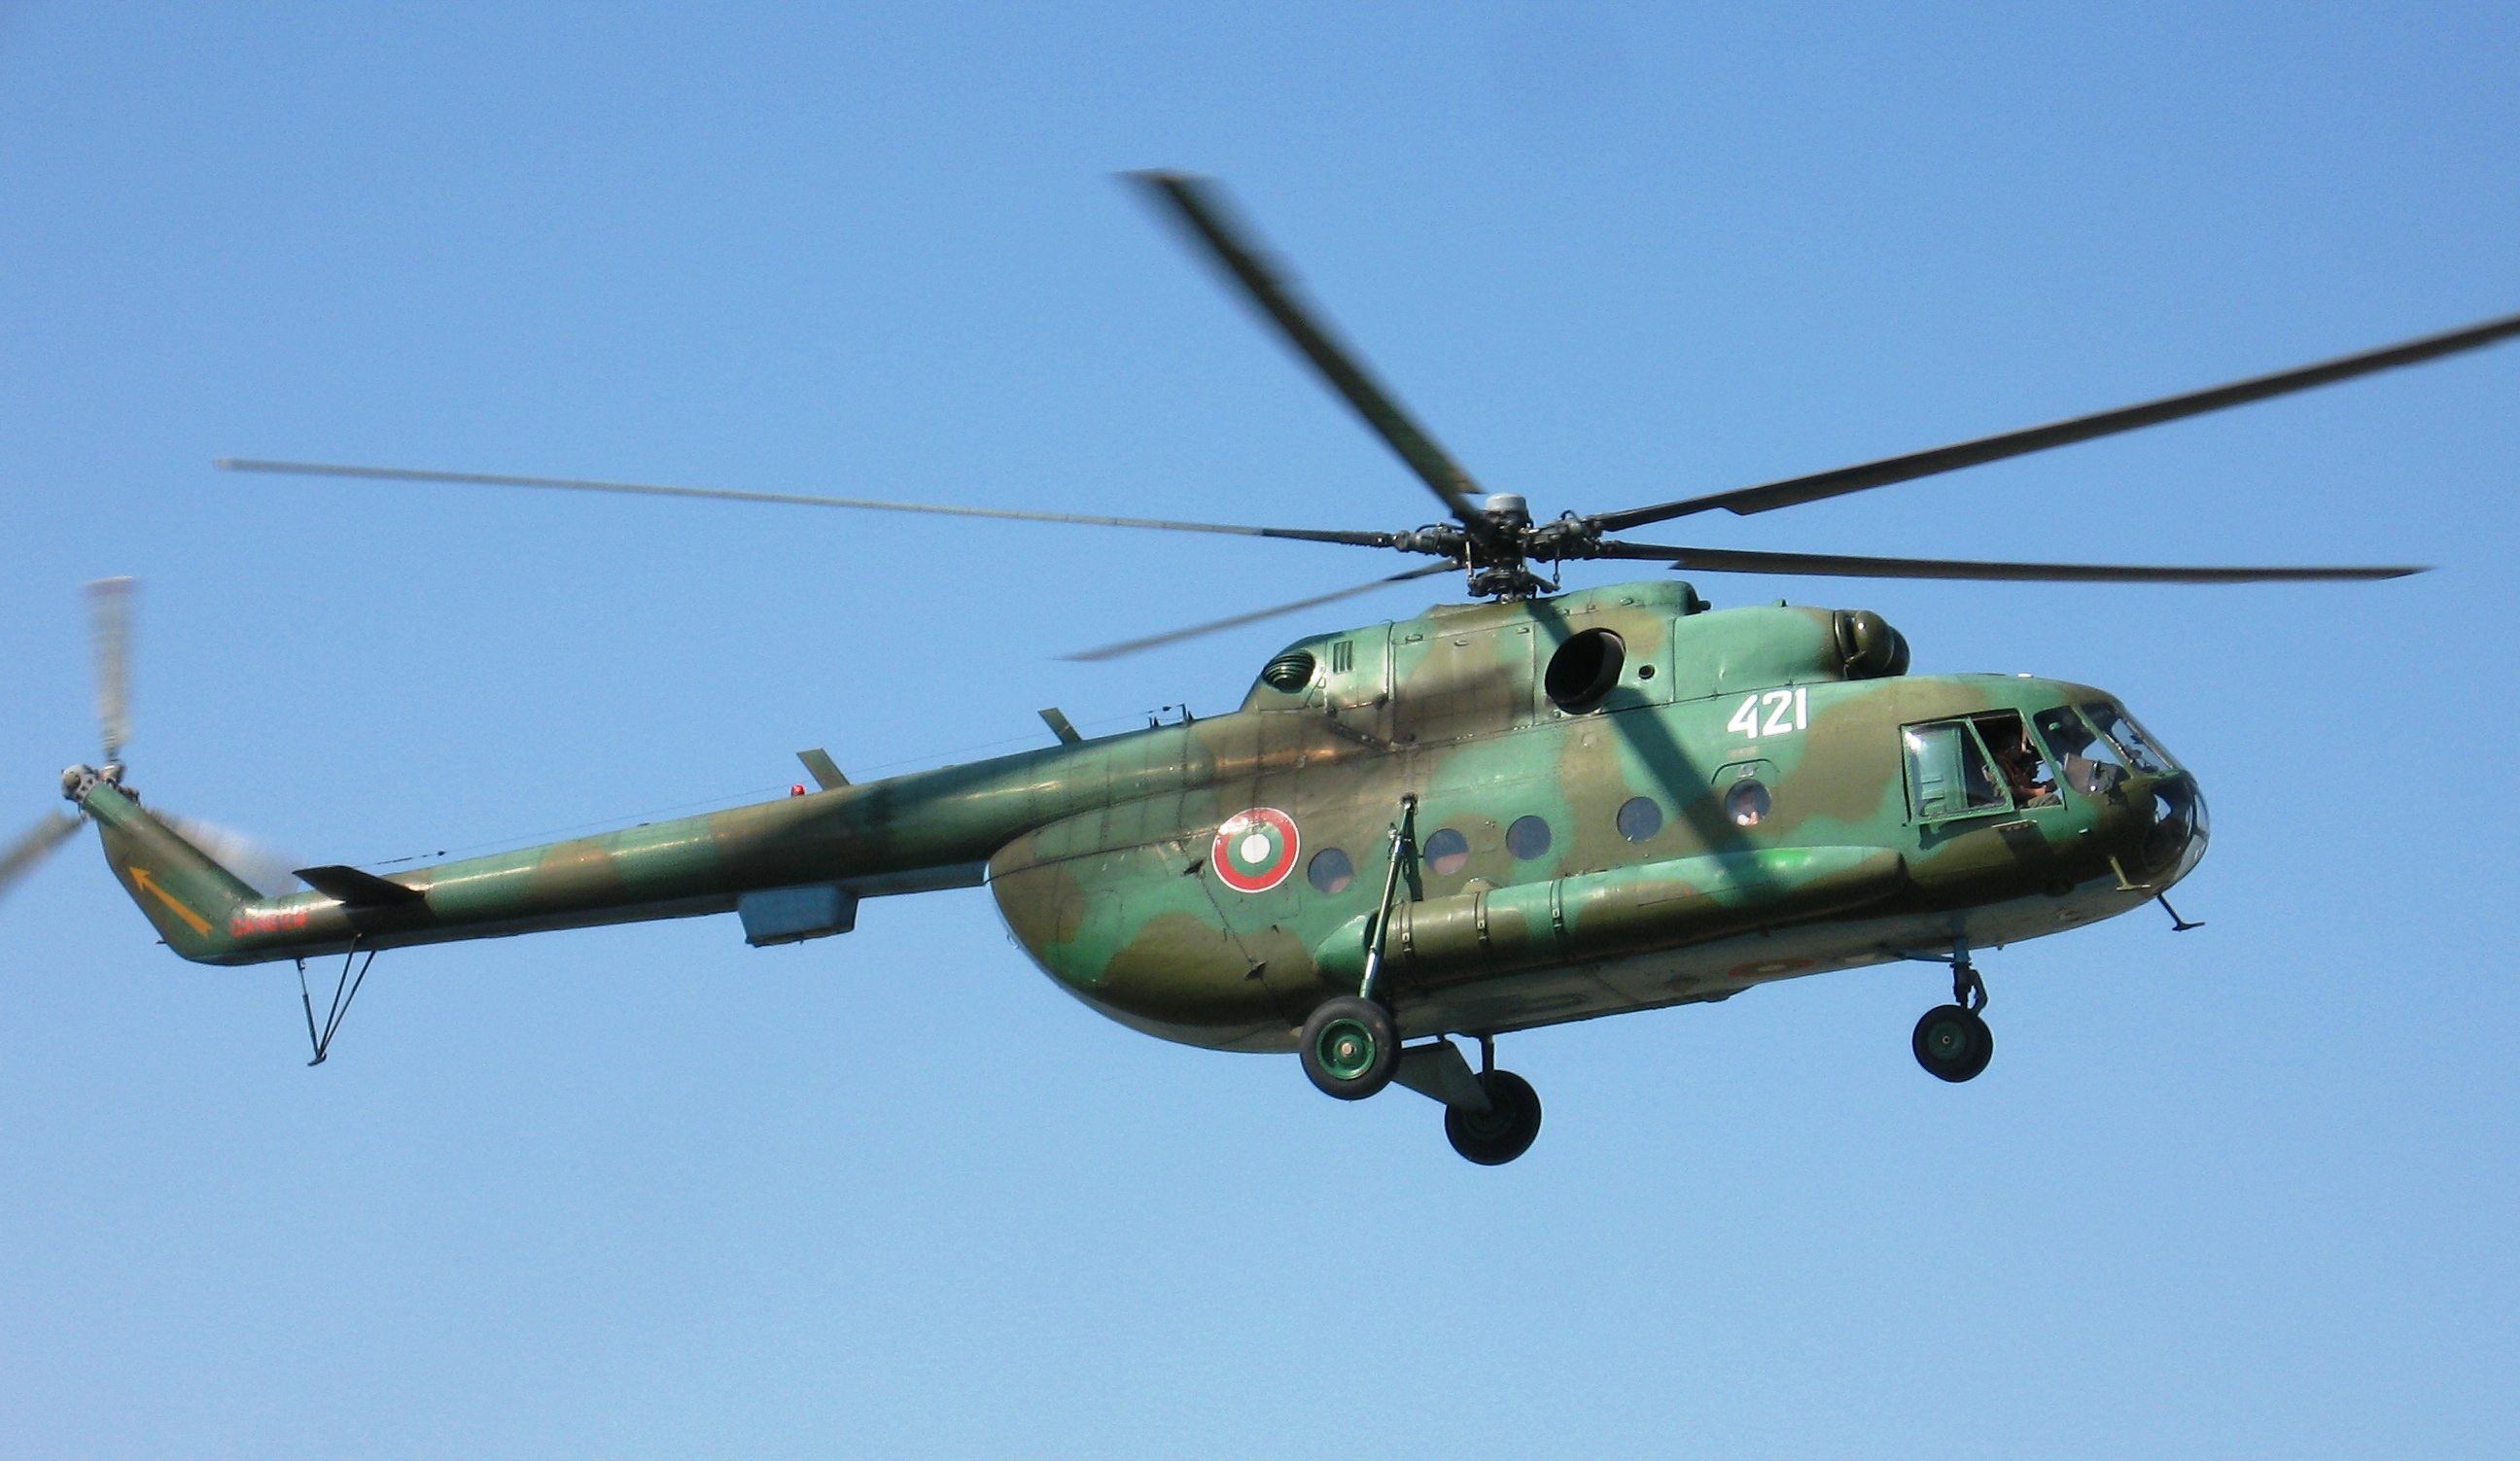 mil 24d hind helicopter with List Of Active Bulgarian Military Aircraft on Mi24hind in addition El Helicoptero De  bate Mi 24 Cumplio 45 Anos additionally 66 24 Mi 24v Bell P 39 Airahind Fantasy furthermore List of active Bulgarian military aircraft moreover .